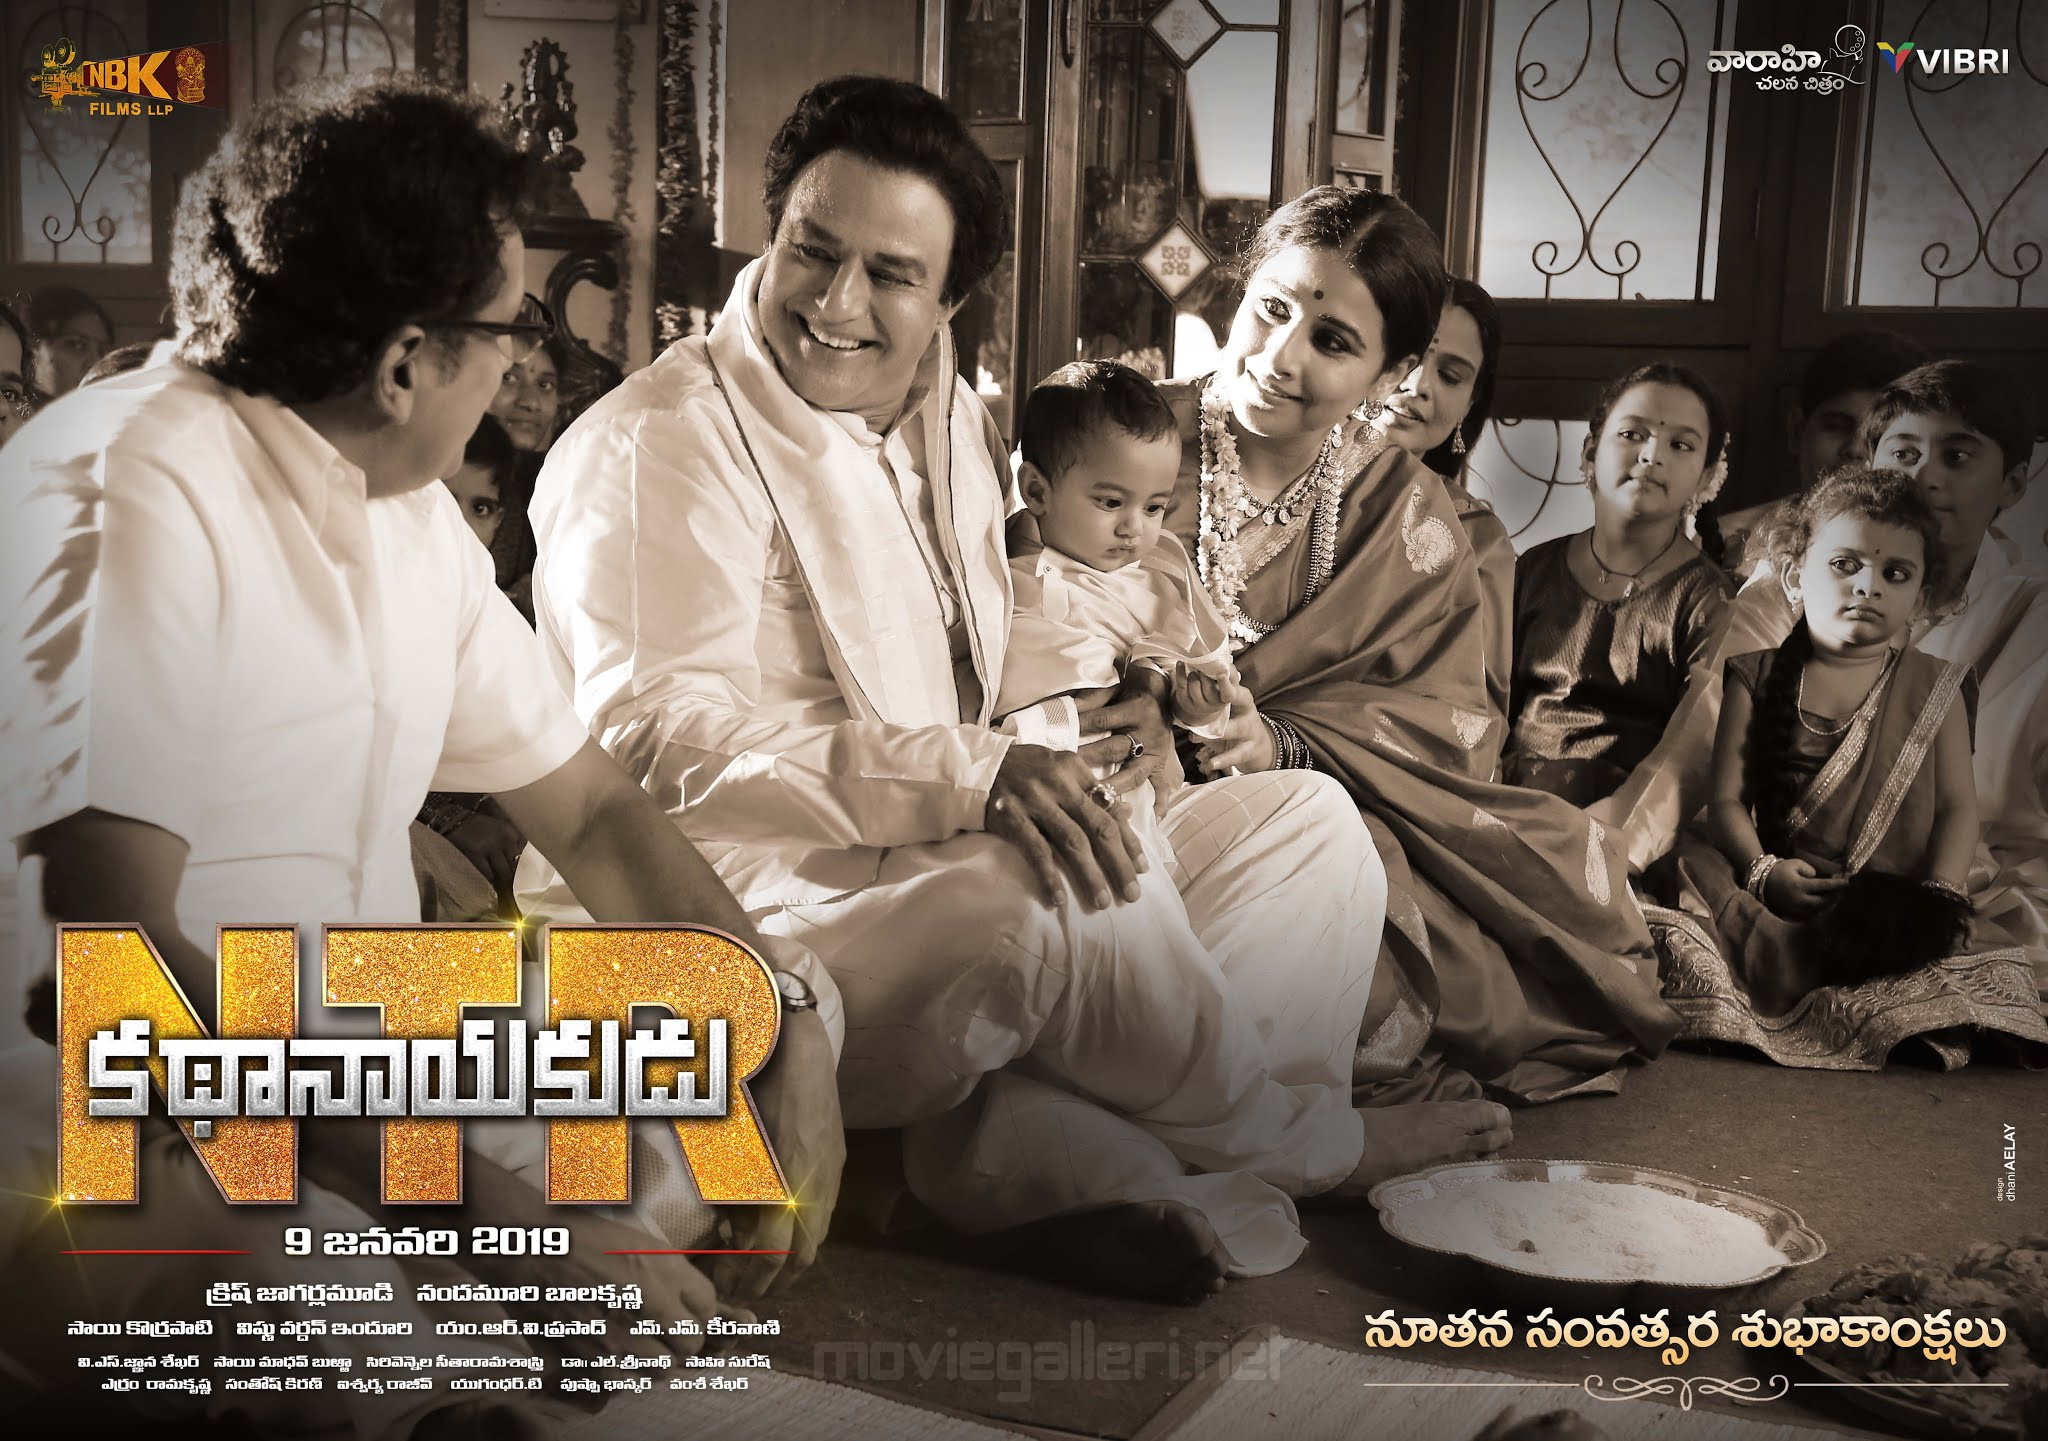 Balakrishna Vidya Balan NTR Biopic Movie New Year 2019 Wishes Wallpaper HD